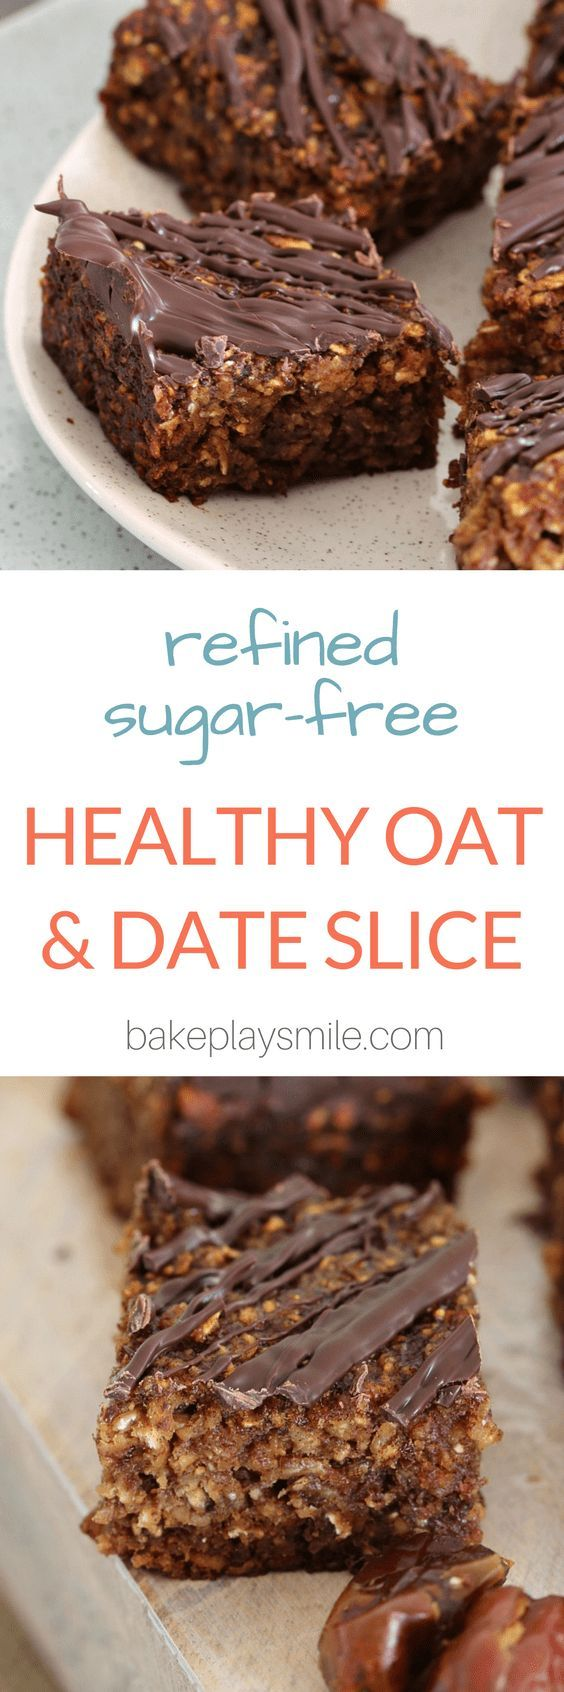 Healthy Oat and Date Slice >>> >>> >>> We love this at Little Mashies headquarters littlemashies.com